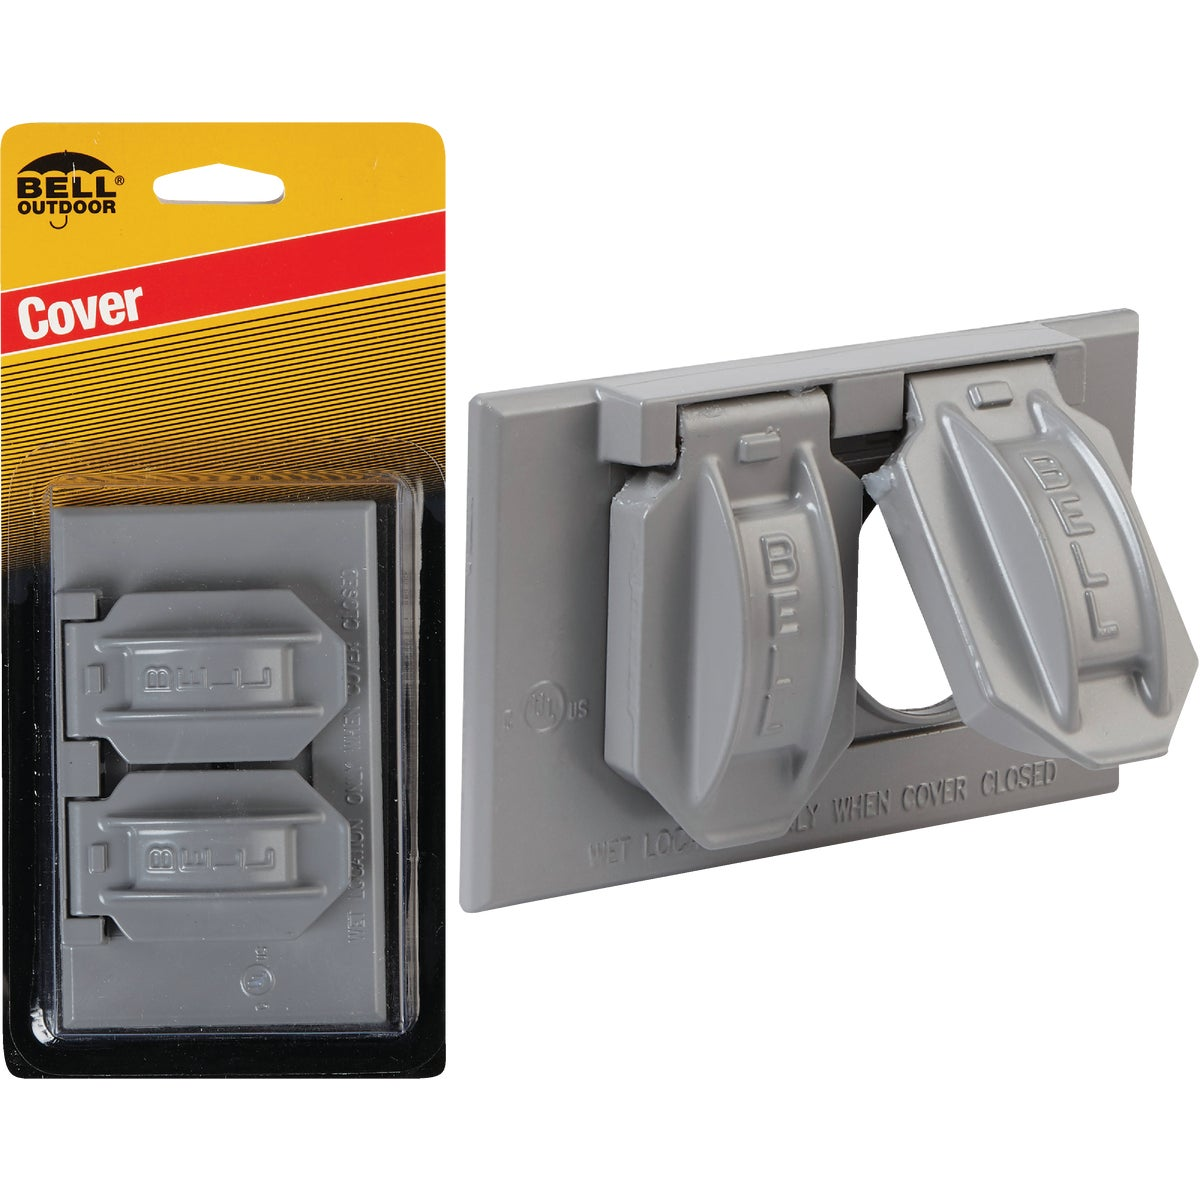 GRAY OUTDOR OUTLET COVER